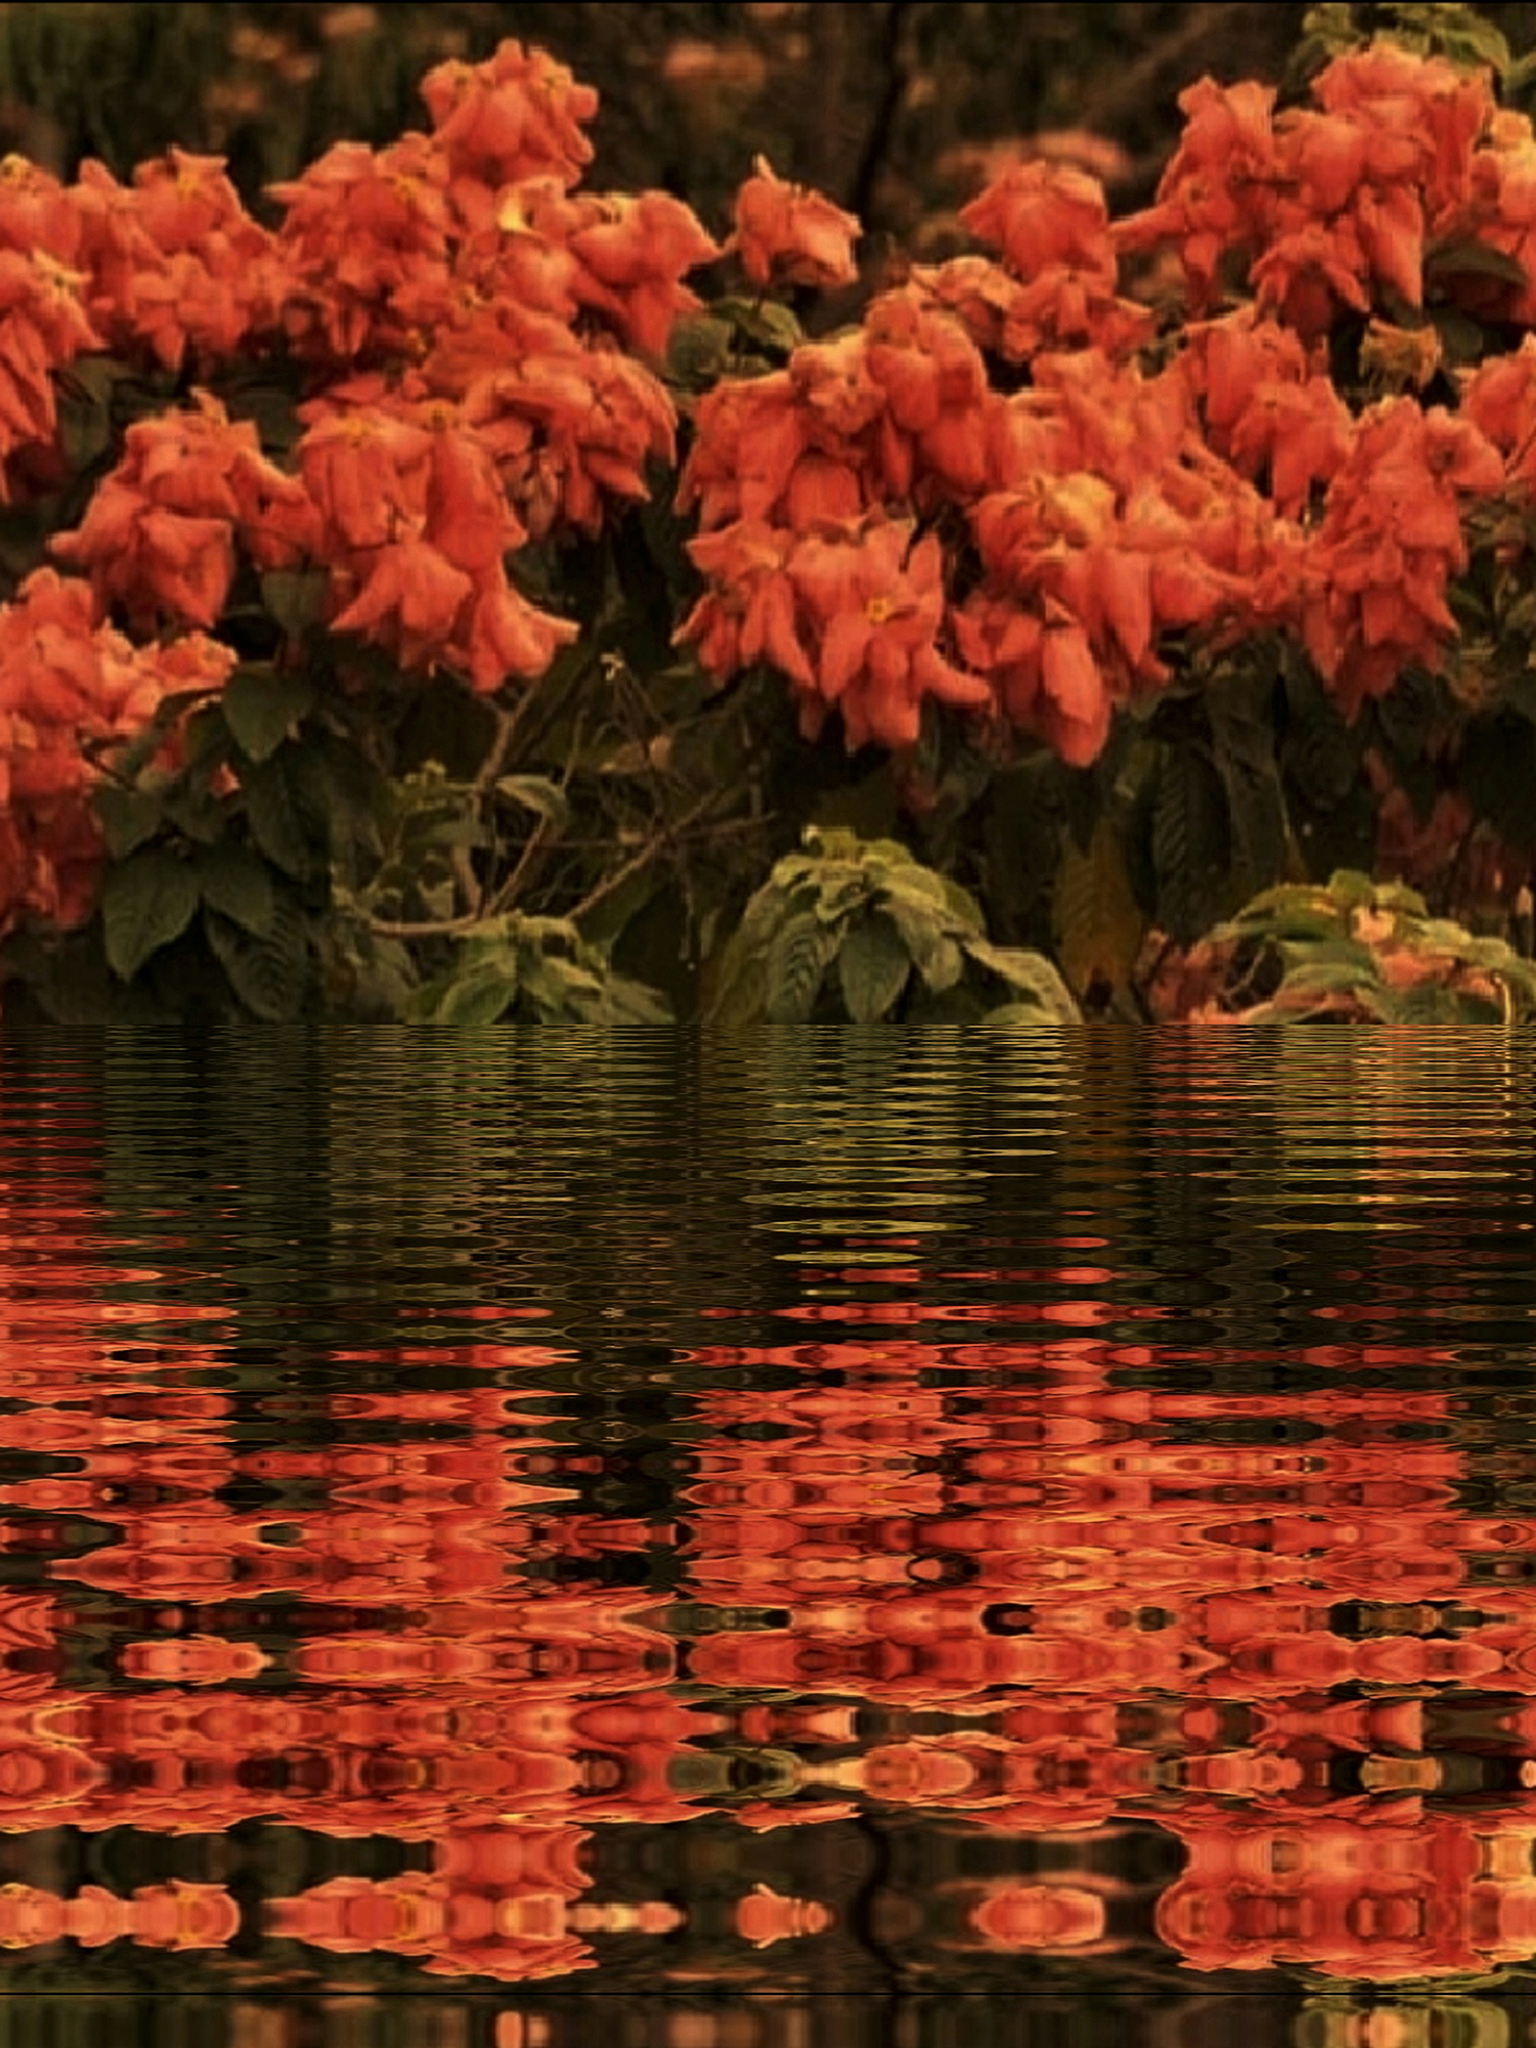 Reflection Of Flowers in the water, Nature Park Mumbai